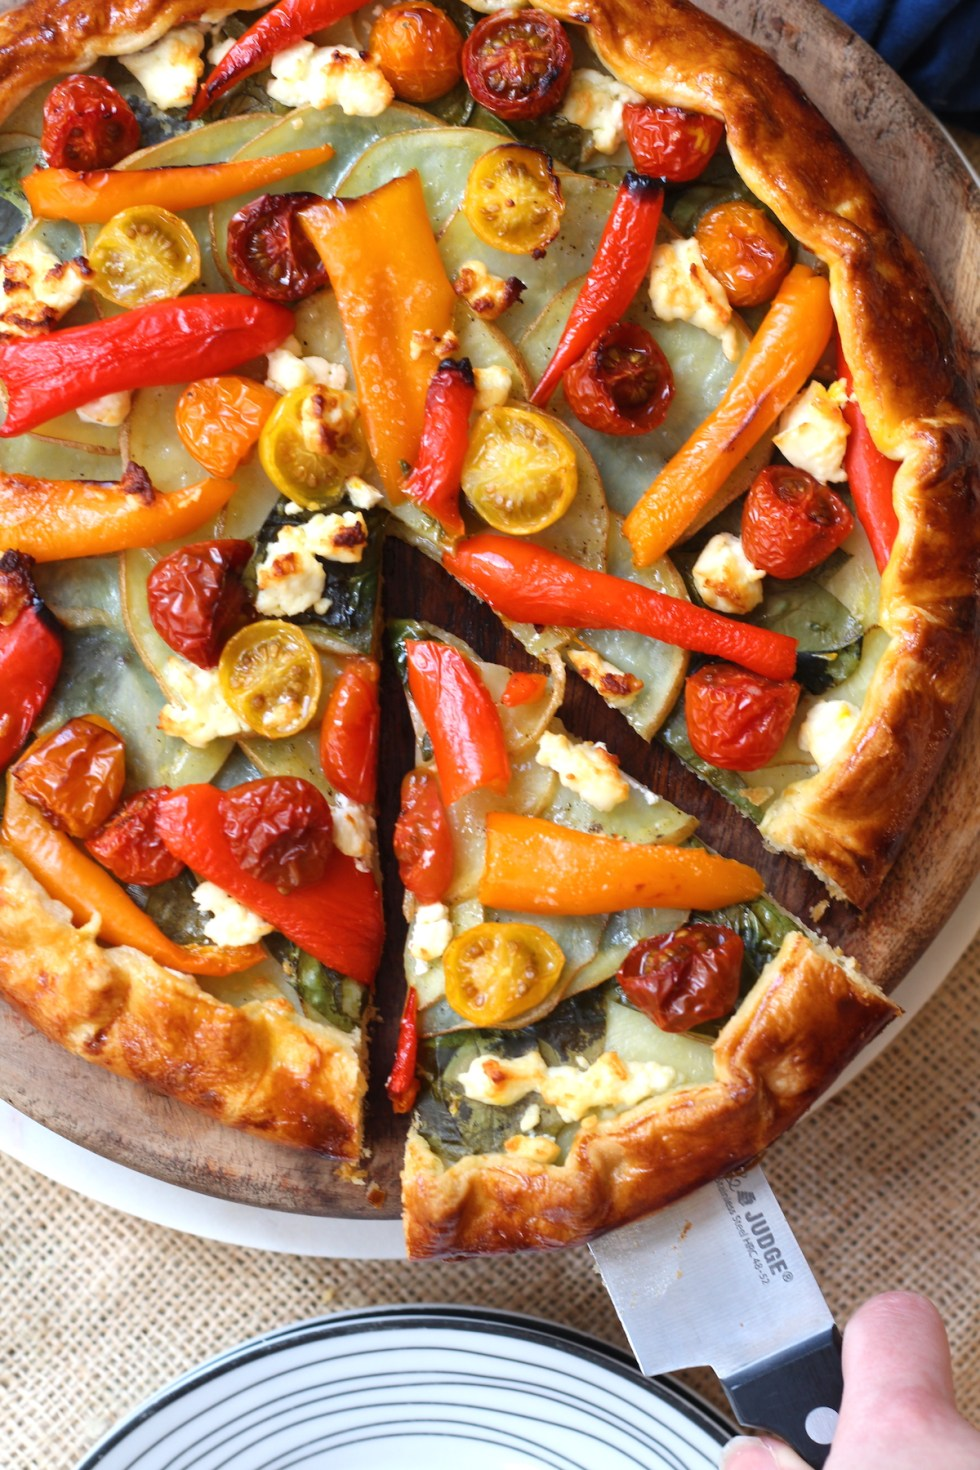 Looking for an easy meal? Try this Mediterranean Galette